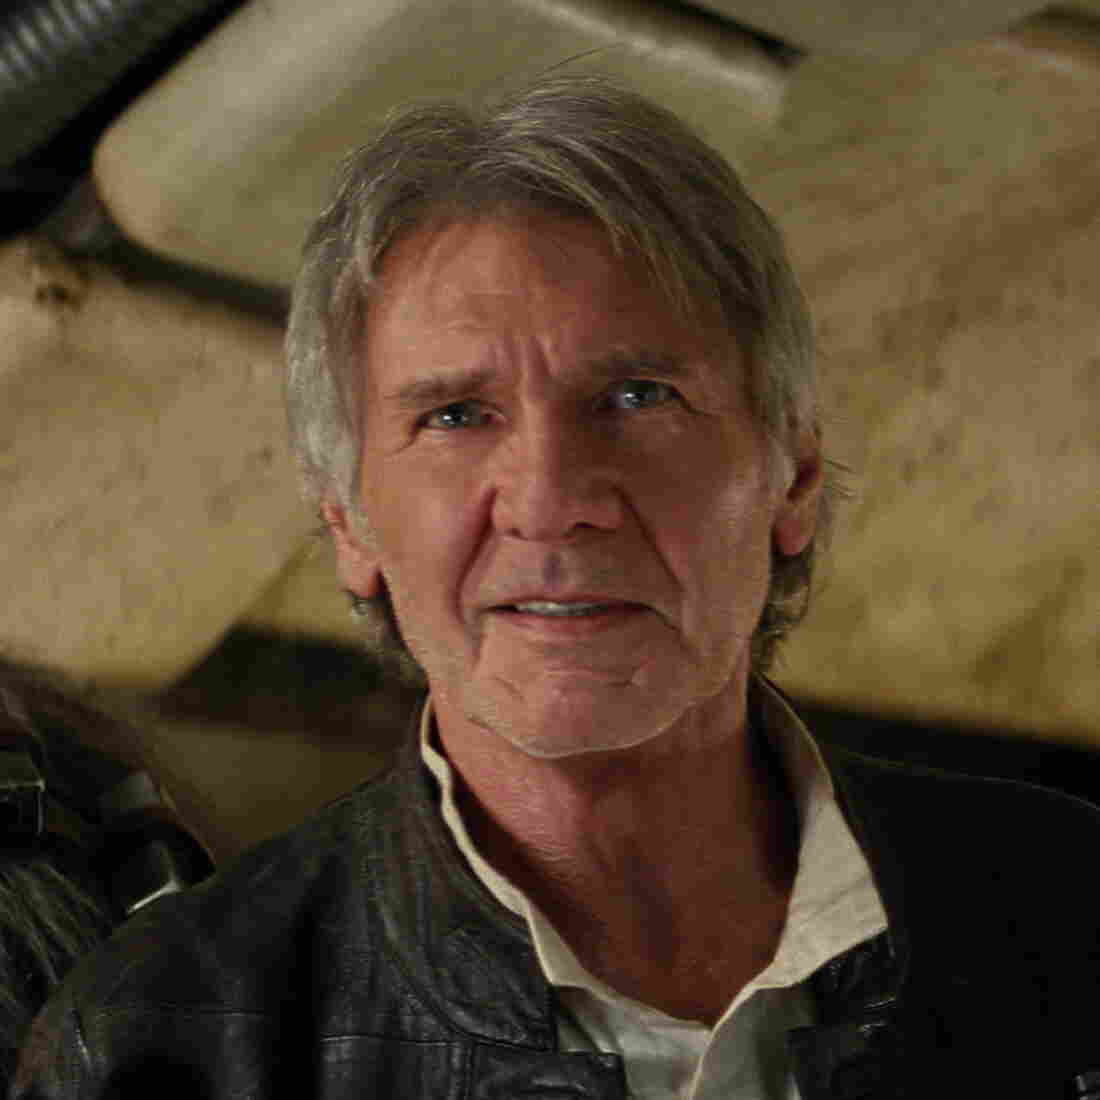 Both Chewbacca (Peter Mayhew) and Han Solo (Harrison Ford) return in Star Wars: The Force Awakens.